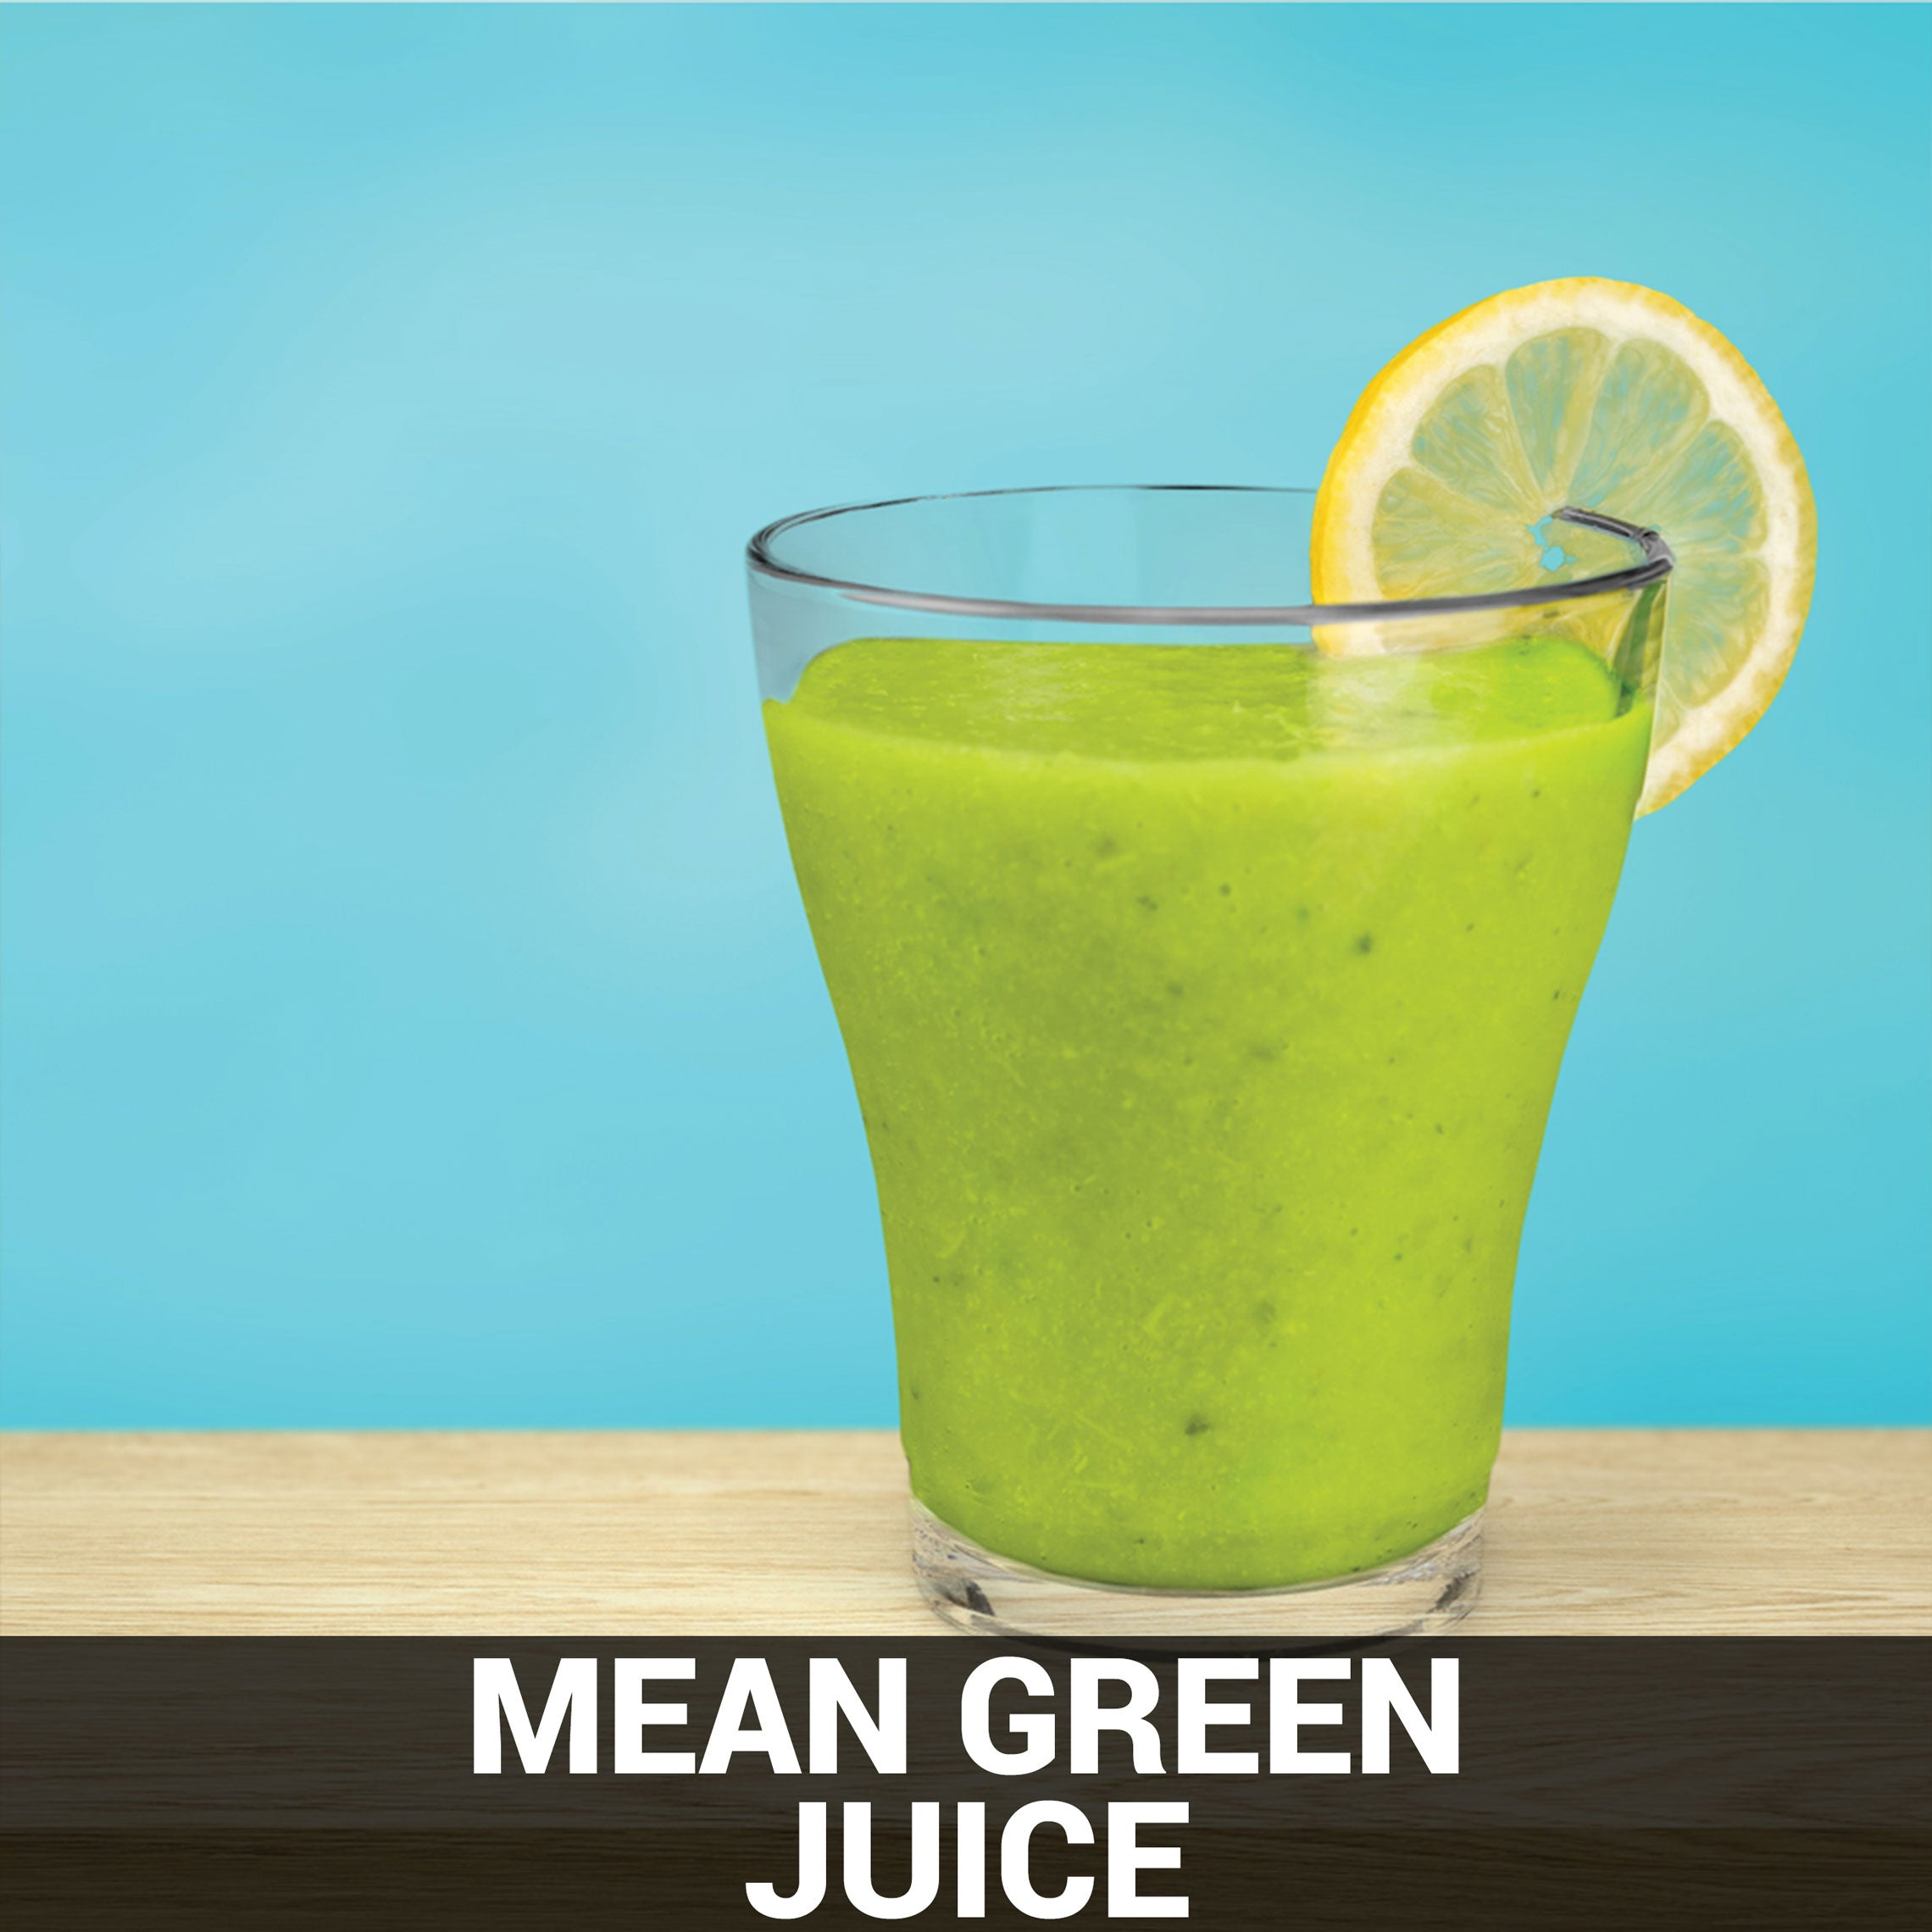 Mean Green Juice Recipe - Foods Alive